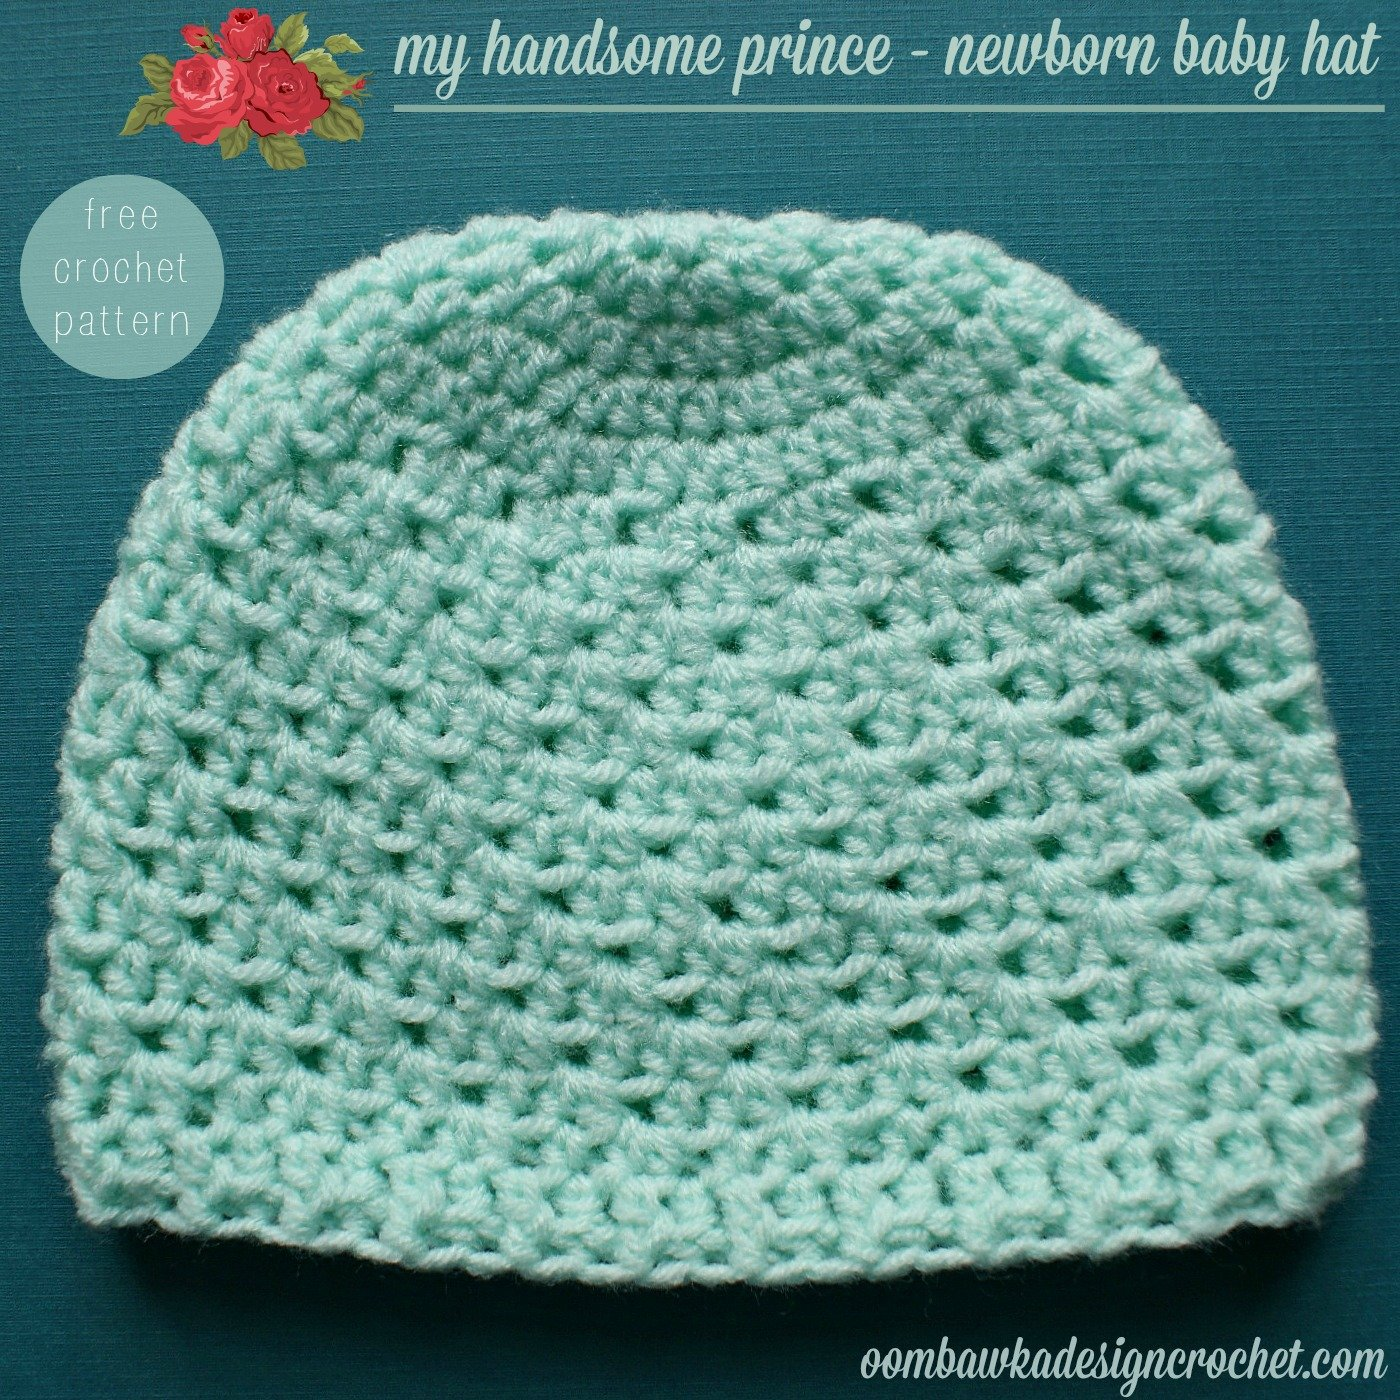 Crocheting A Baby Hat : My Handsome Prince Newborn Baby Hat ? Oombawka Design Crochet